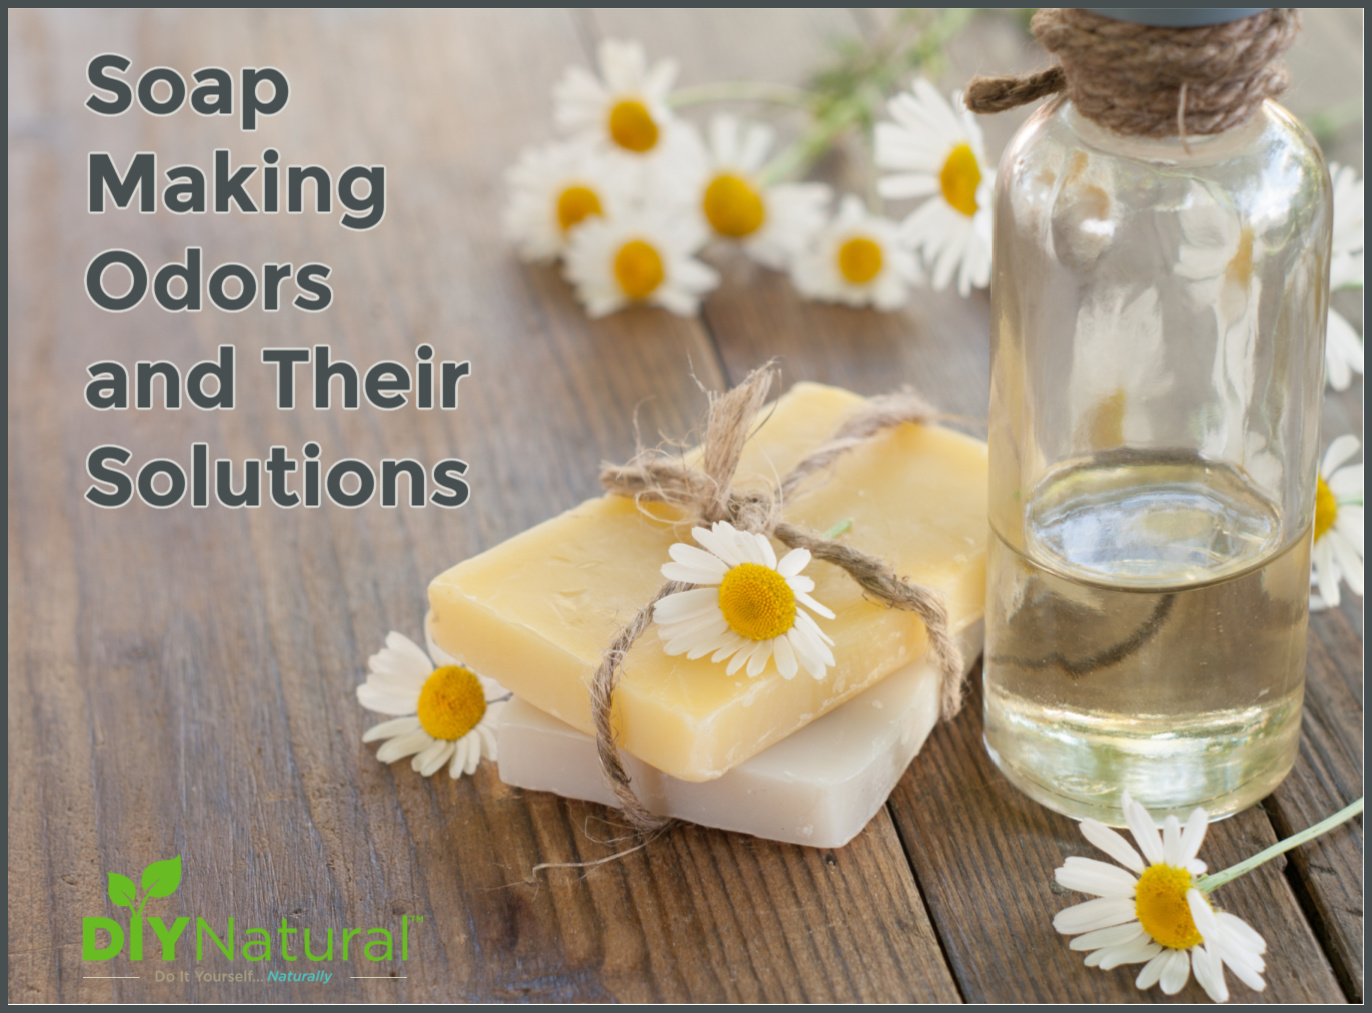 Strange Soap Making Odors and How To Avoid Them